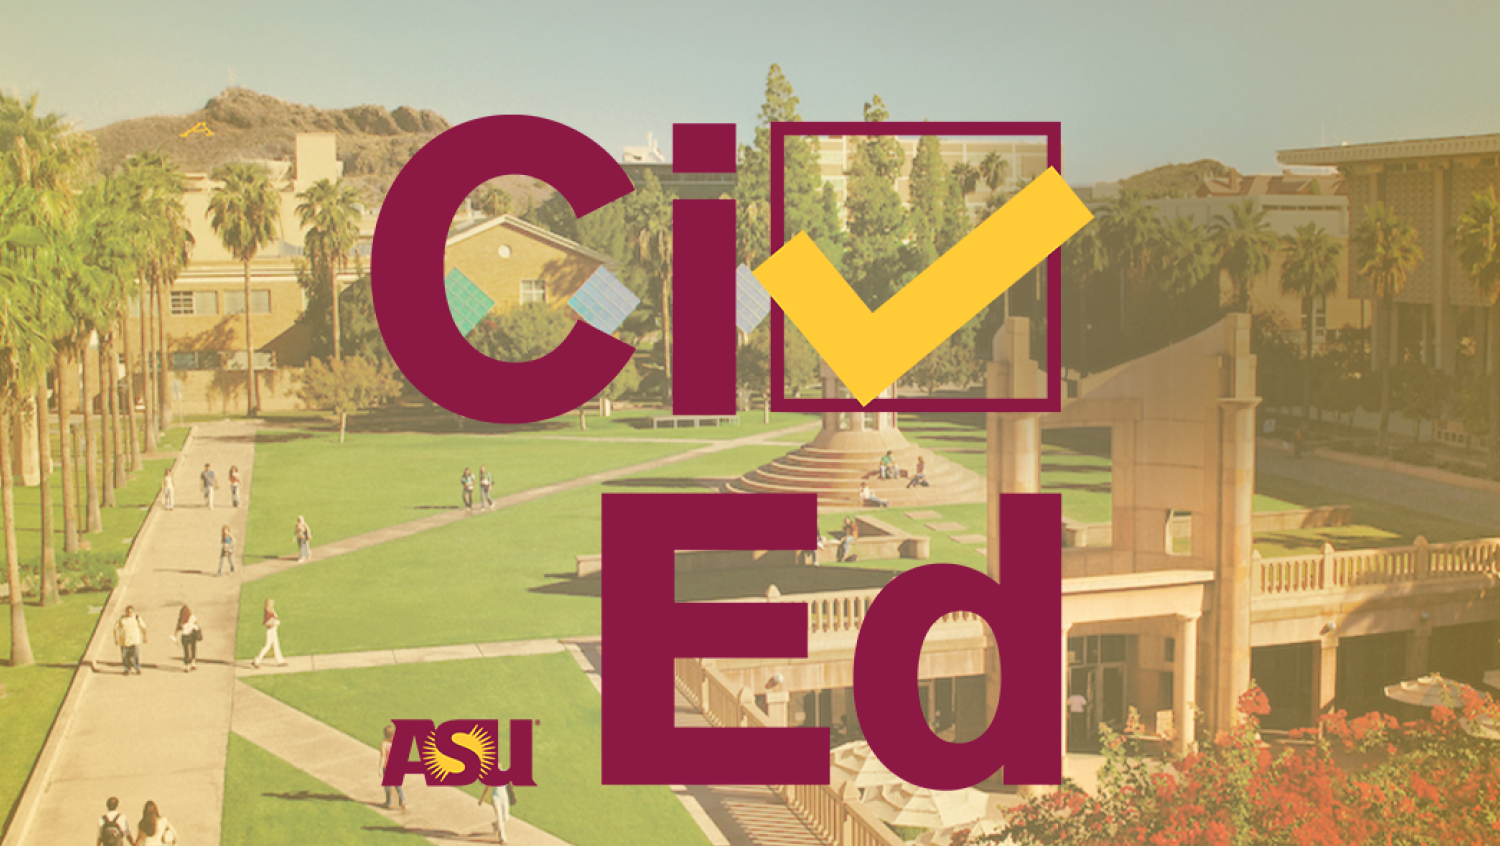 Arizona State University Mobile App: CivEd